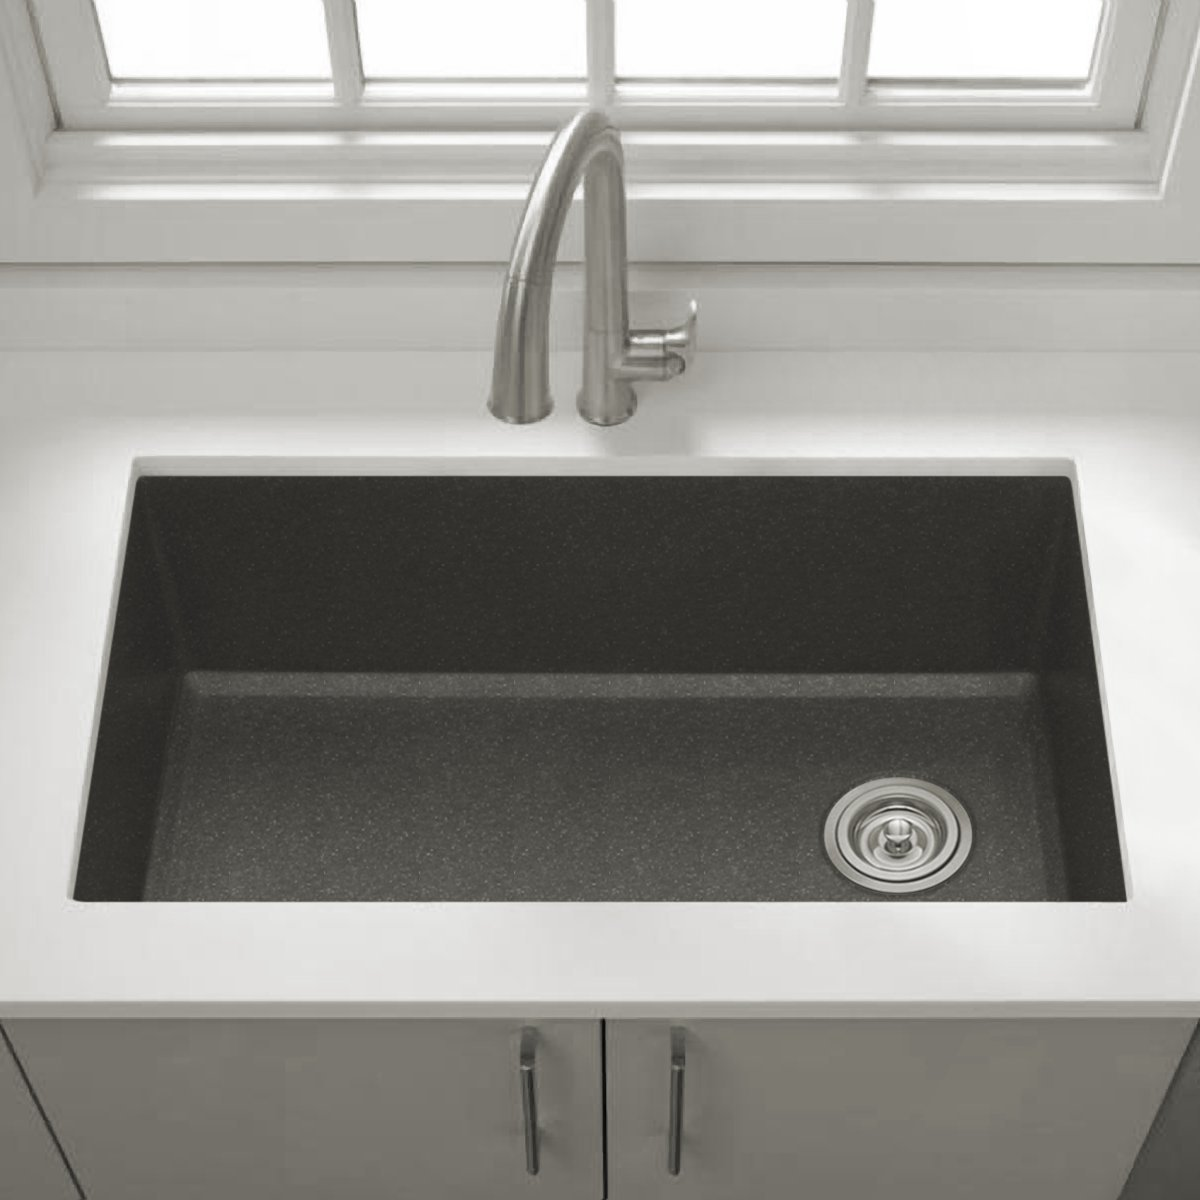 Granite Kitchen Sink : Zuhne Rialto 32 Inch Undermount Single Bowl Black      Amazon.com